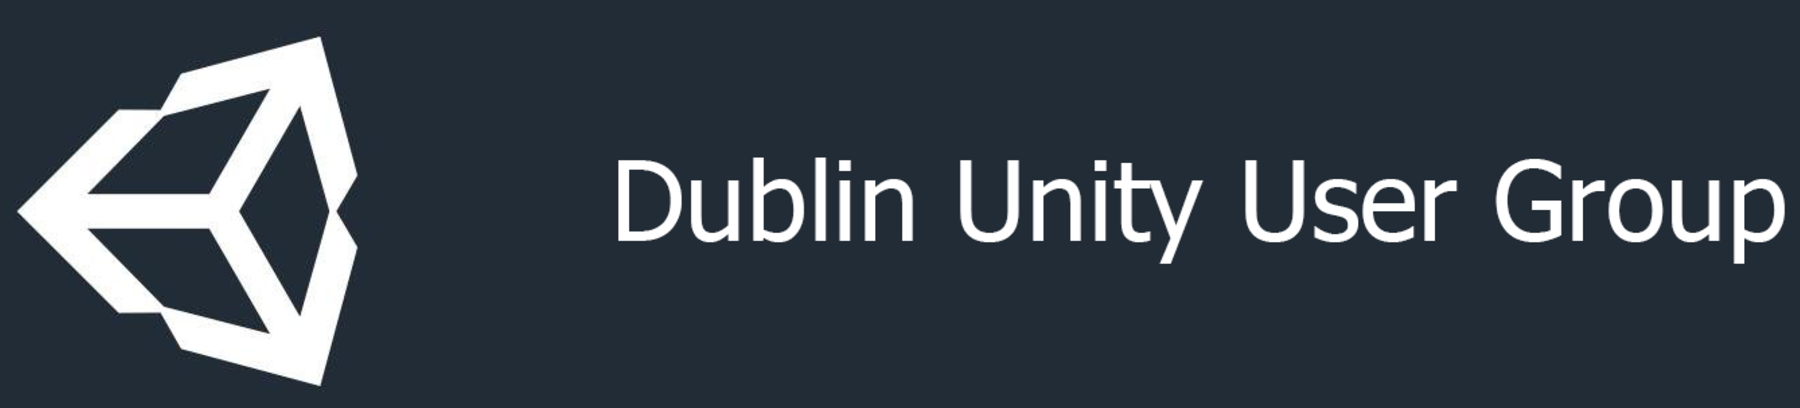 Dublin Unity User Group (DUUG)